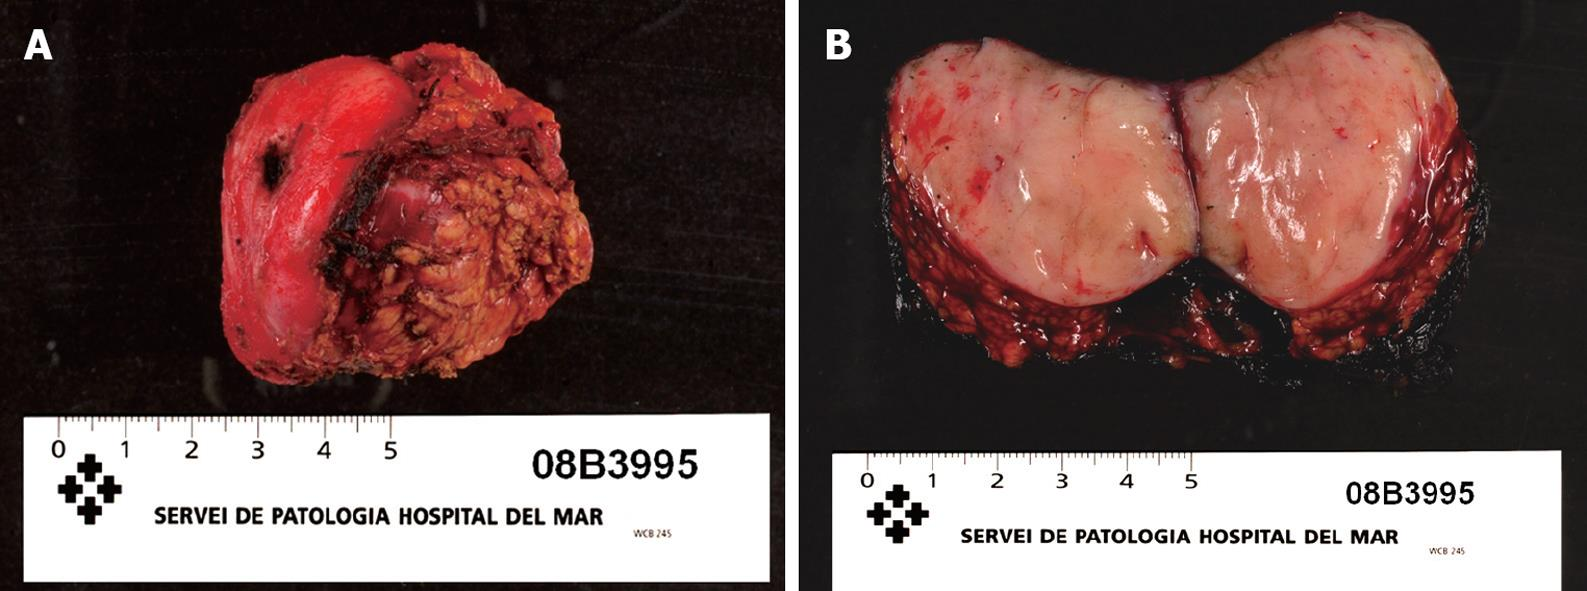 Resection of the uncinate process of the pancreas due to a ... Cancer Of Uncinate Process Of Pancreas Icd 10